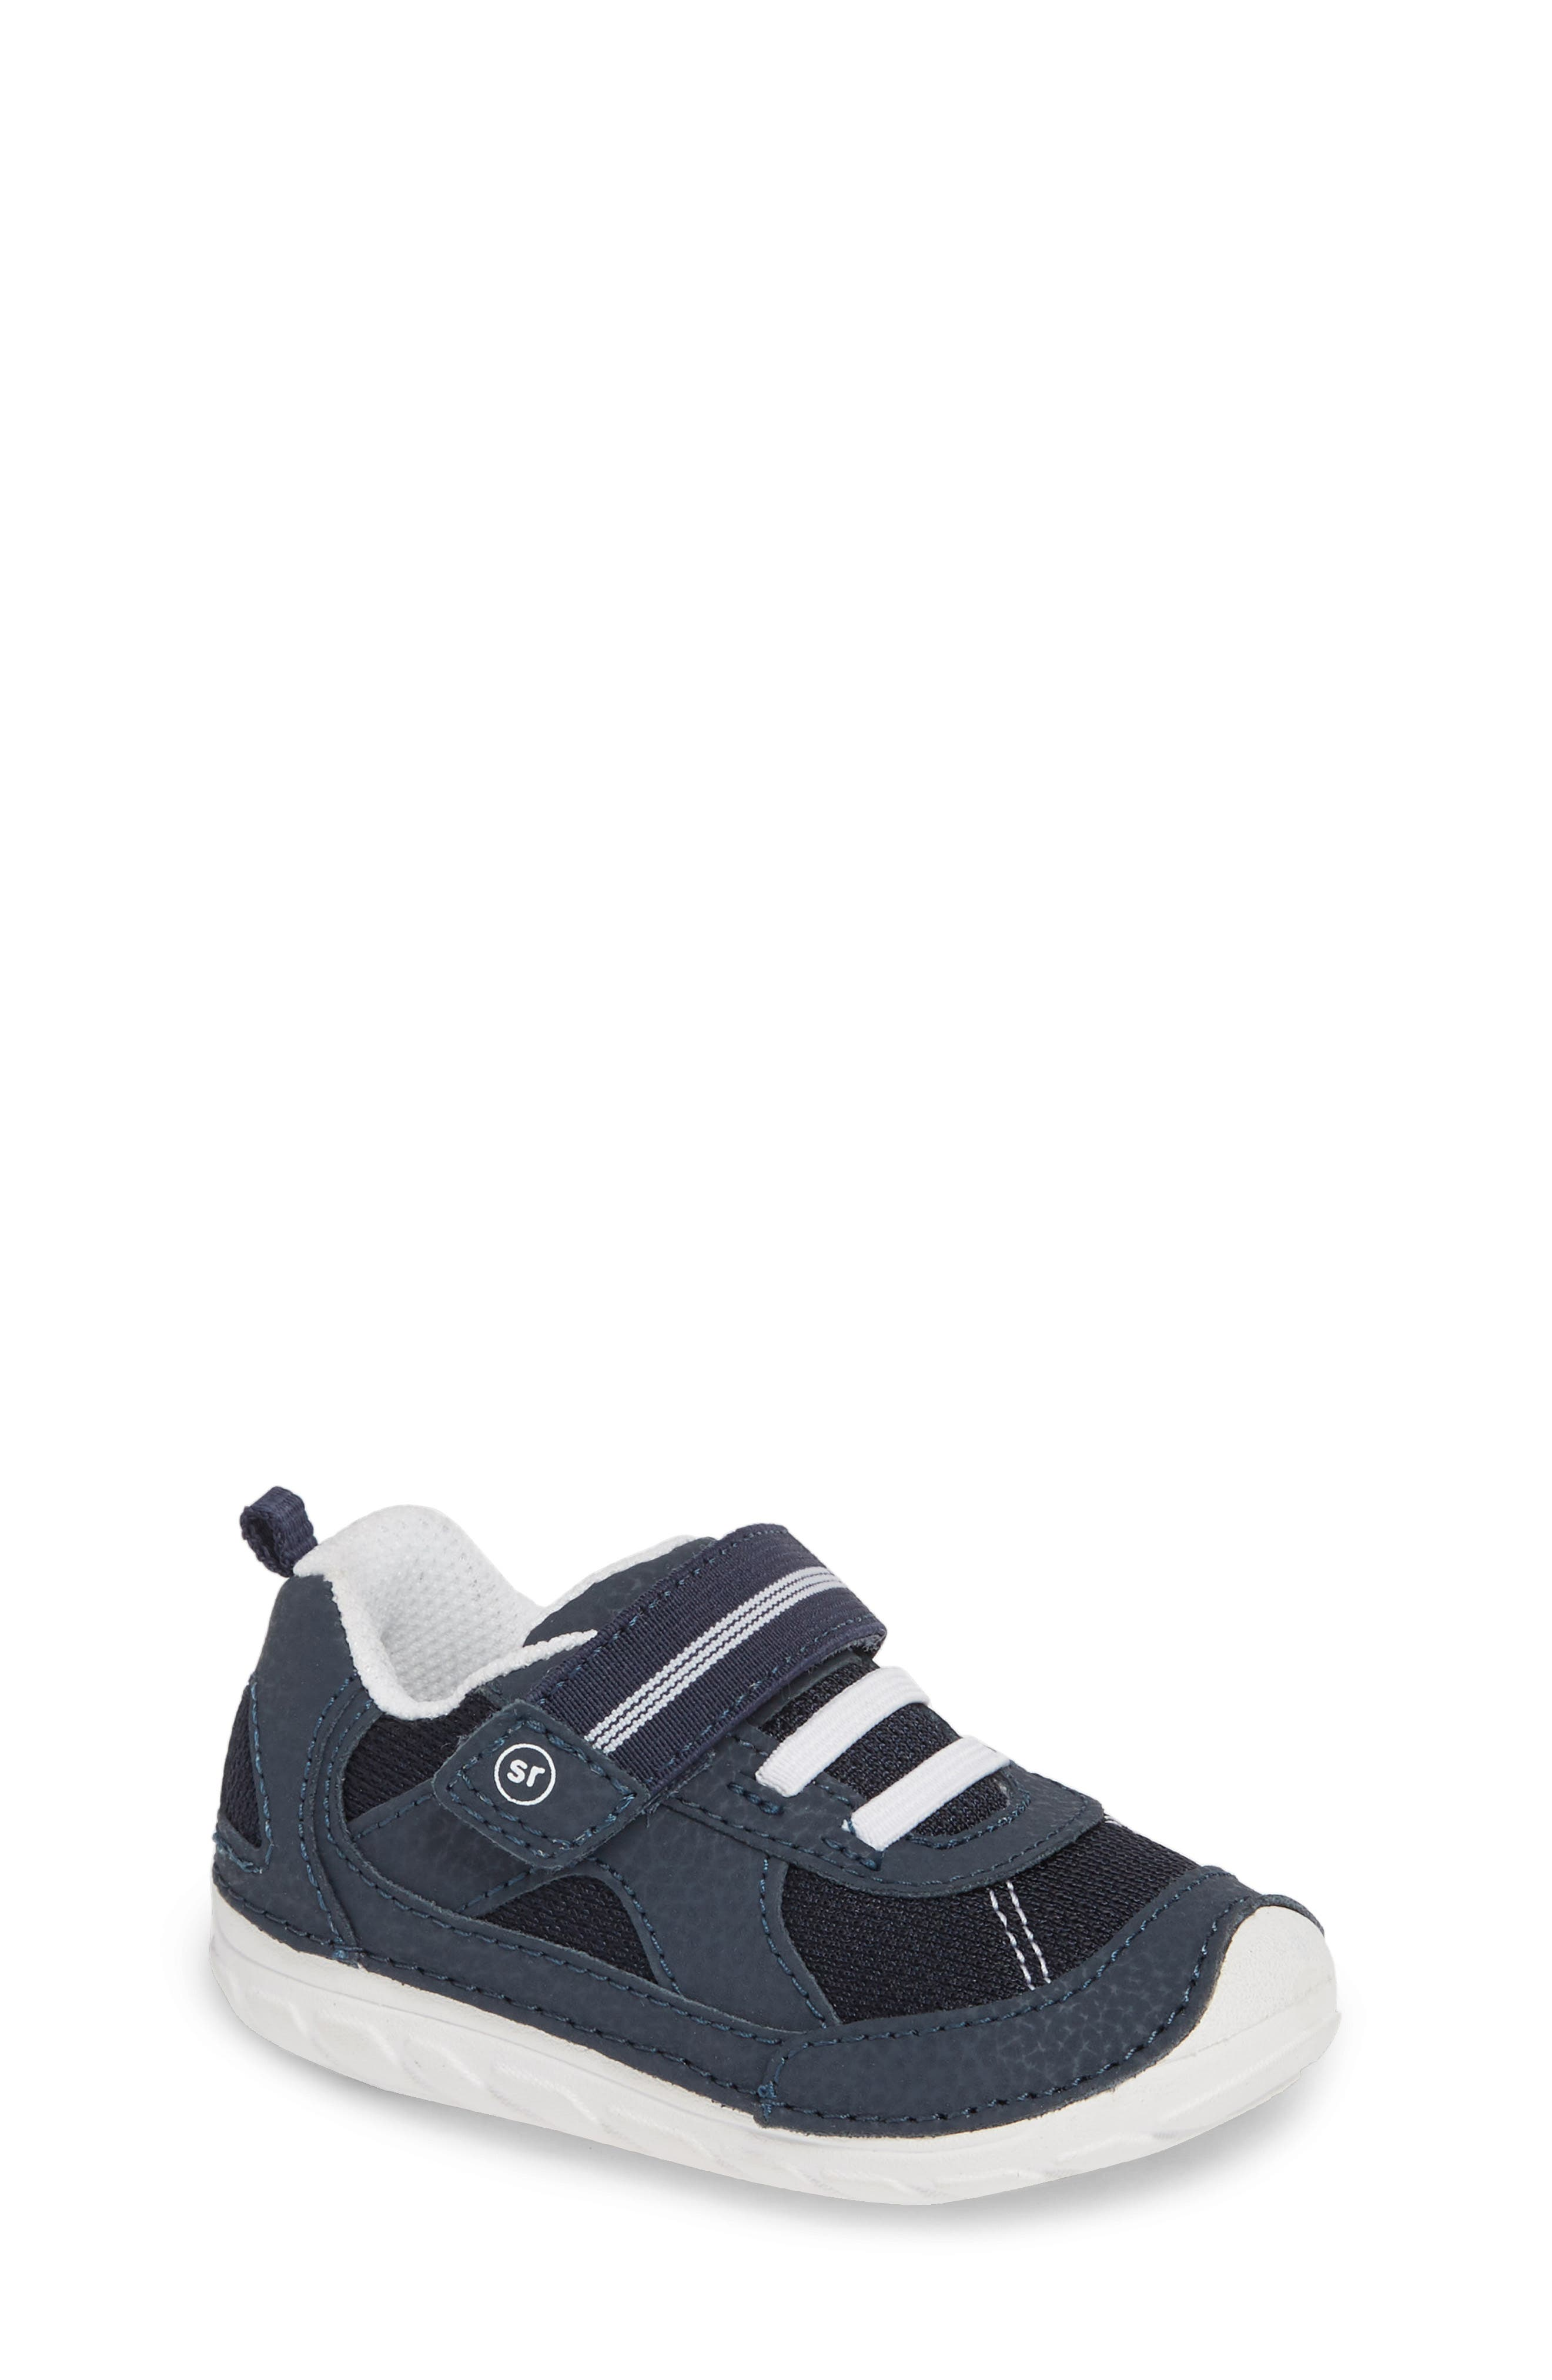 STRIDE RITE,                             Soft Motion<sup>™</sup> Jamie Sneaker,                             Main thumbnail 1, color,                             NAVY/ WHITE